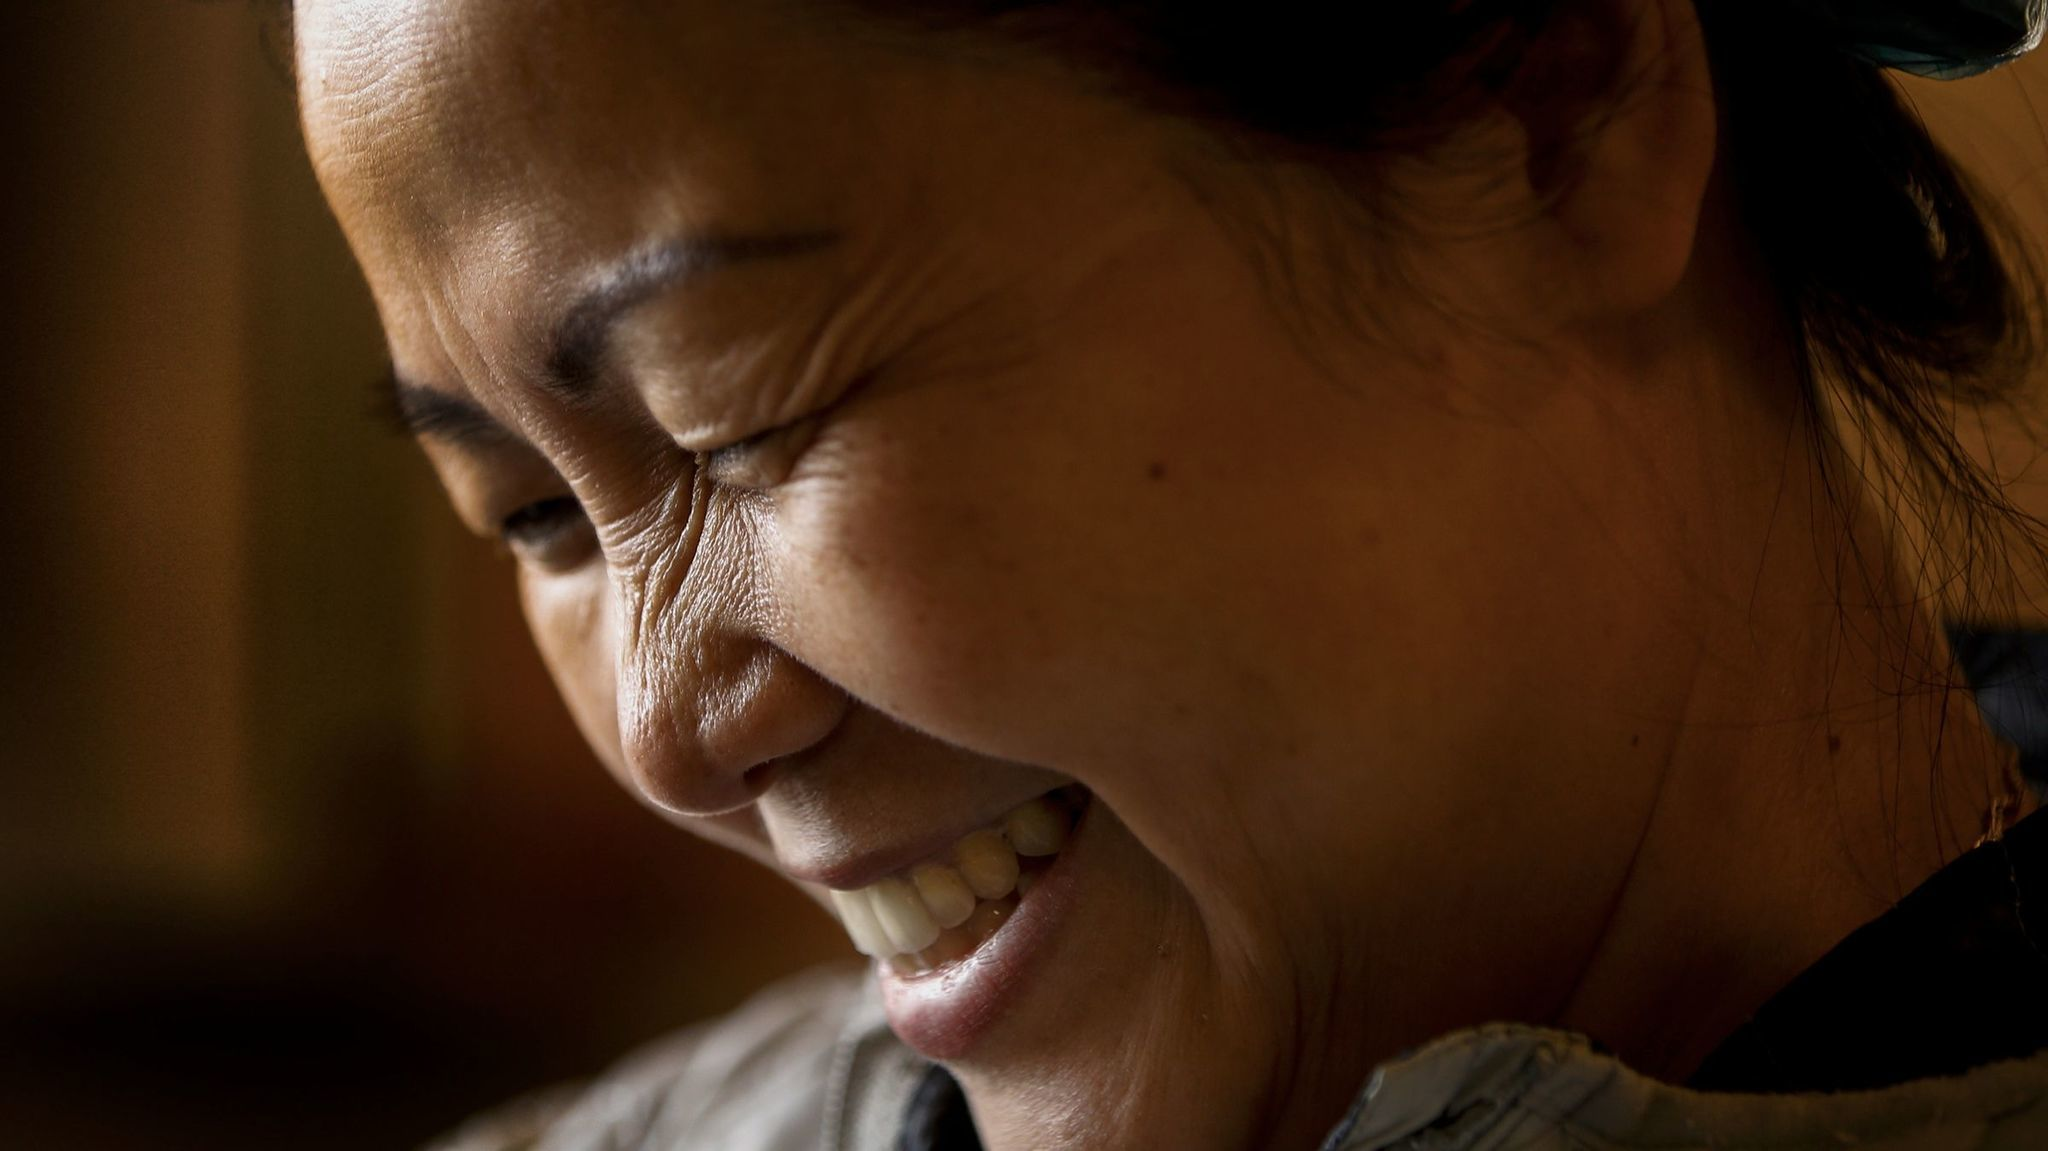 Hue Phan says she finds fulfillment in her Buddhist religion, volunteering to help cook on weekends at the temple.